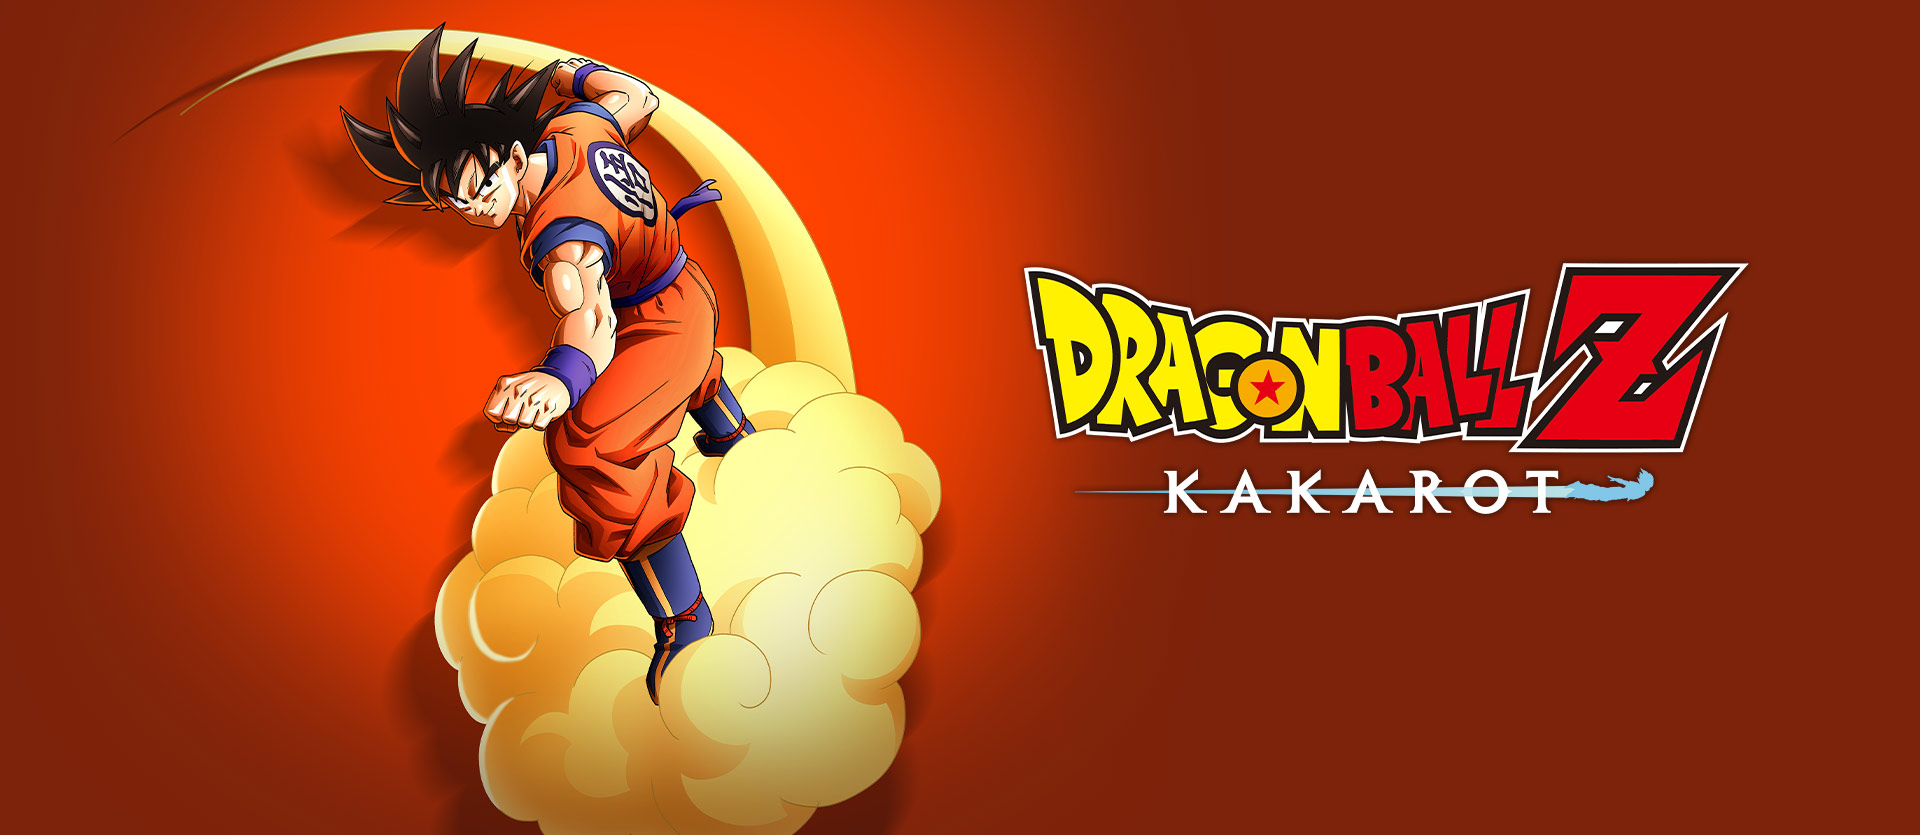 Dragon Ball Z: Kakarot, Dragon Ball Z: Kakarot logo with Goku on a cloud